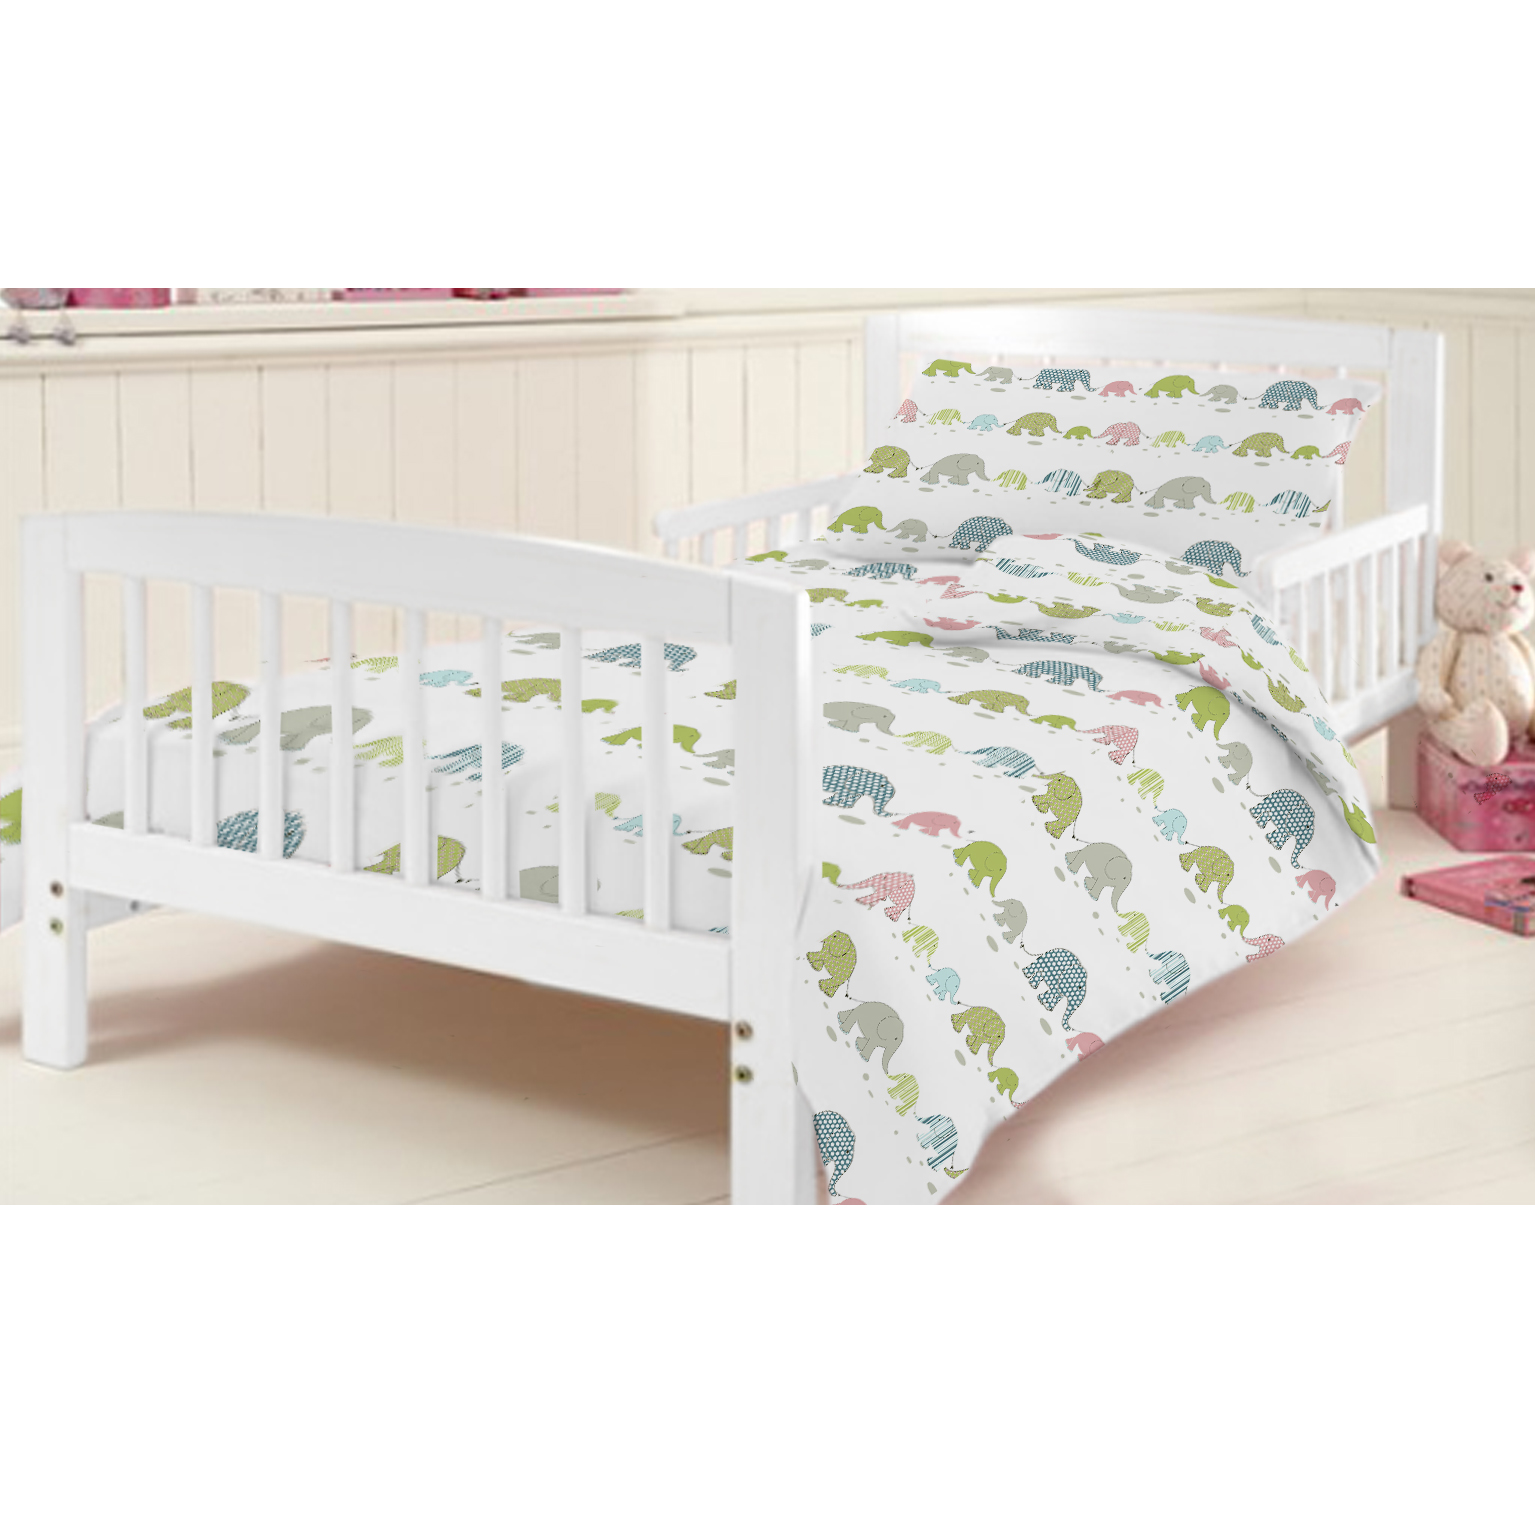 ready steady bed children s kids cot bed junior duvet cover bedding